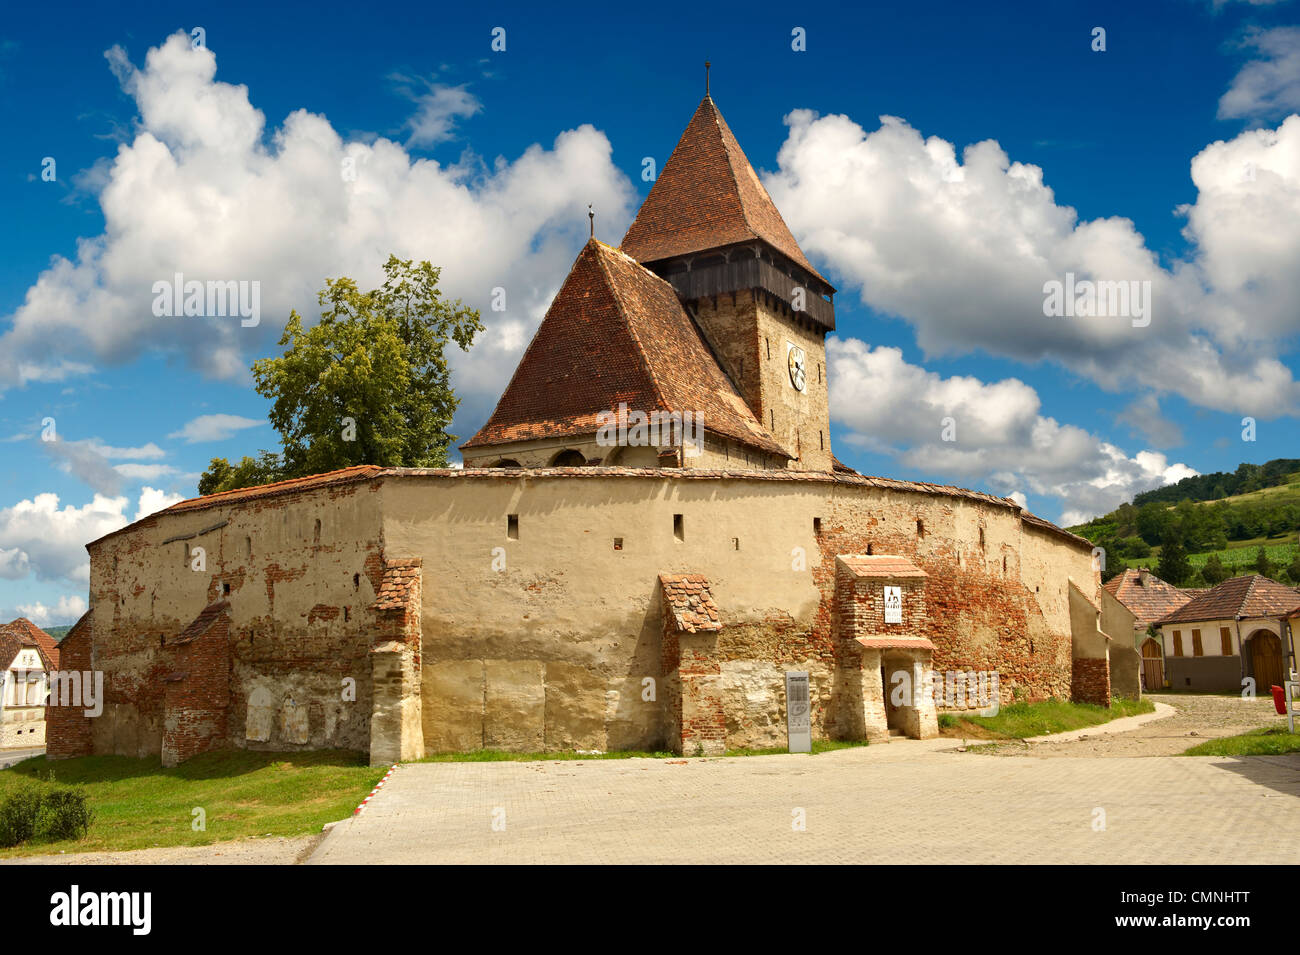 The Gothic 14th Century Axente Sever Saxon Evangelical Fortified Church, Sibiu, Transylvania. - Stock Image